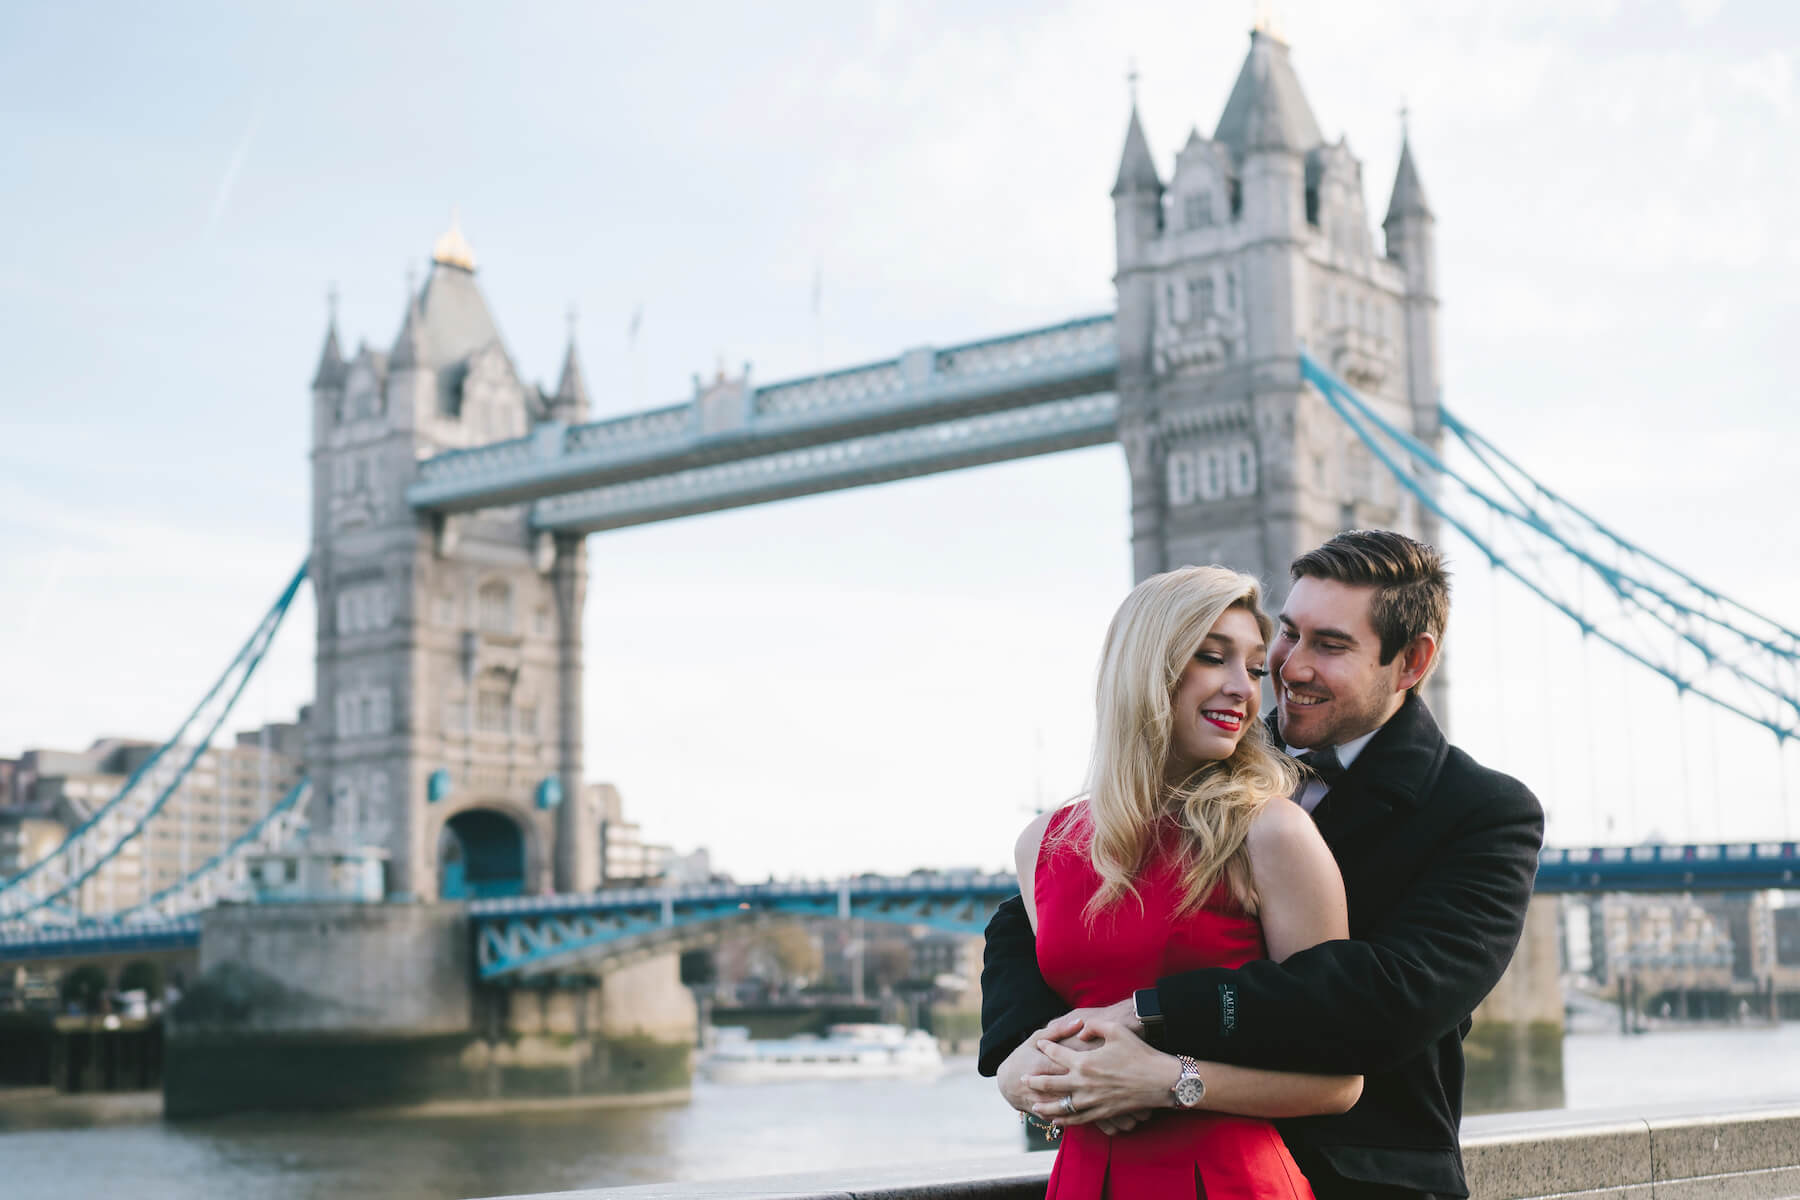 couple sitting and holding each other, dressed up in formal attire in front of the Tower Bridge in London, England